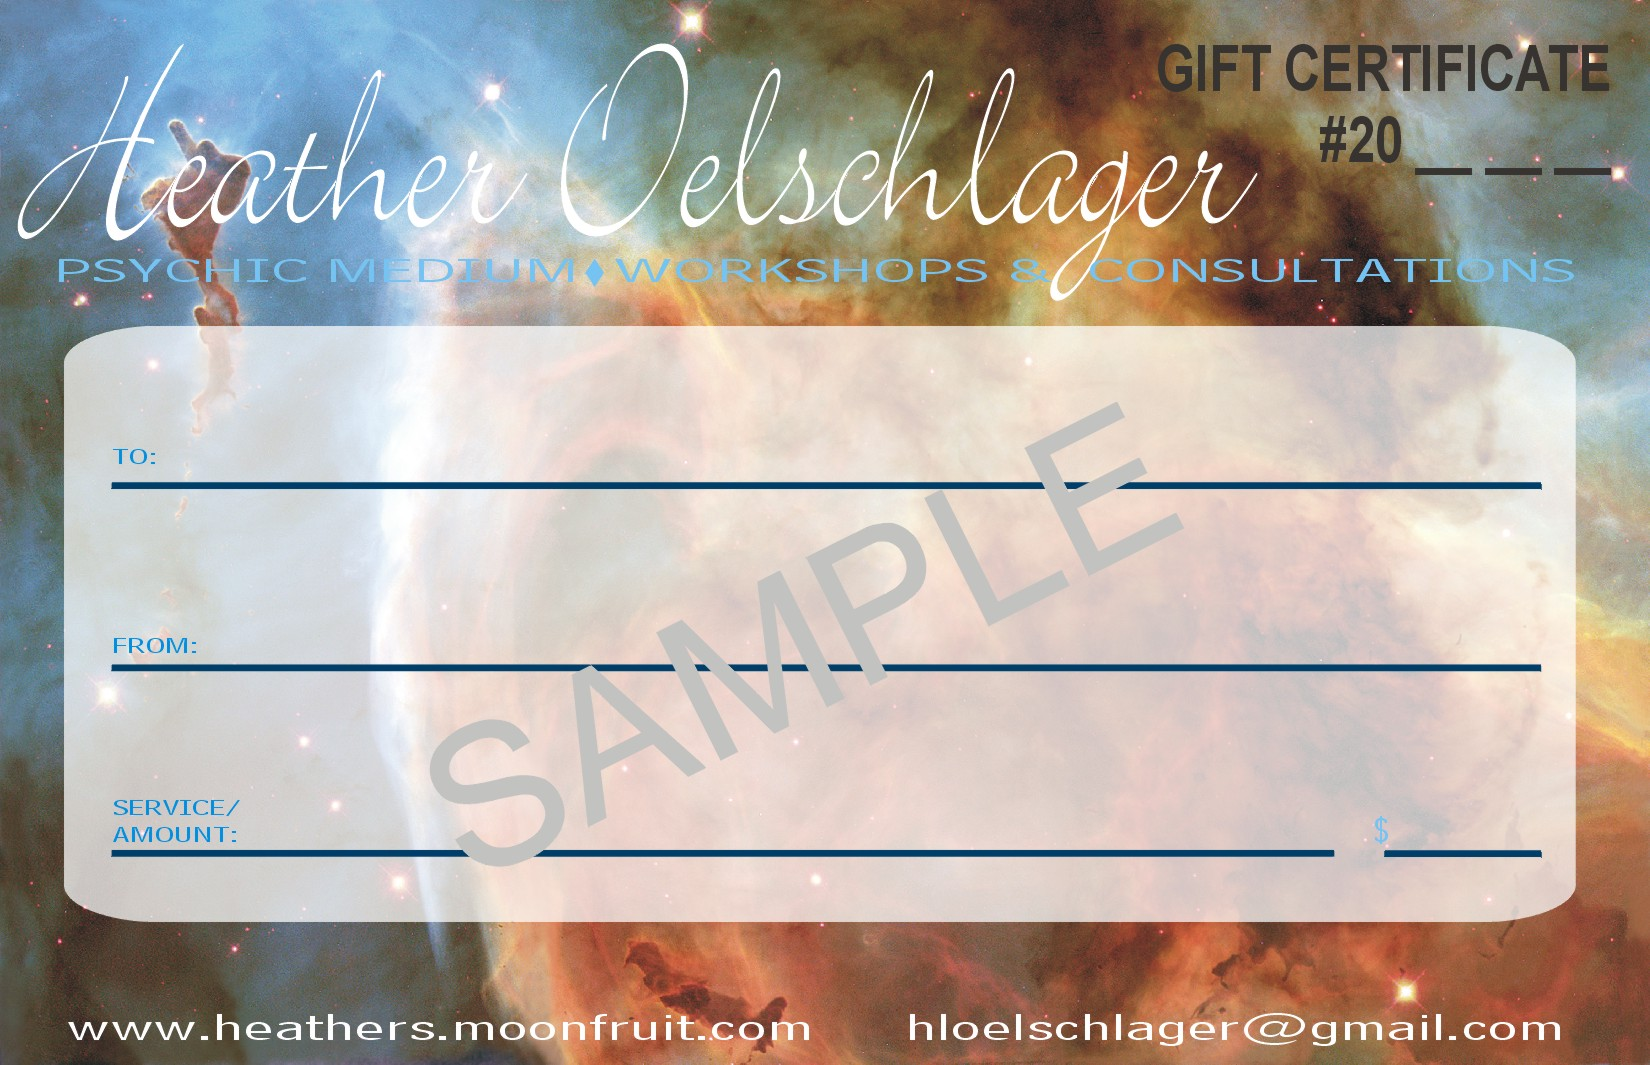 2015 Gift Certificate Special Offer